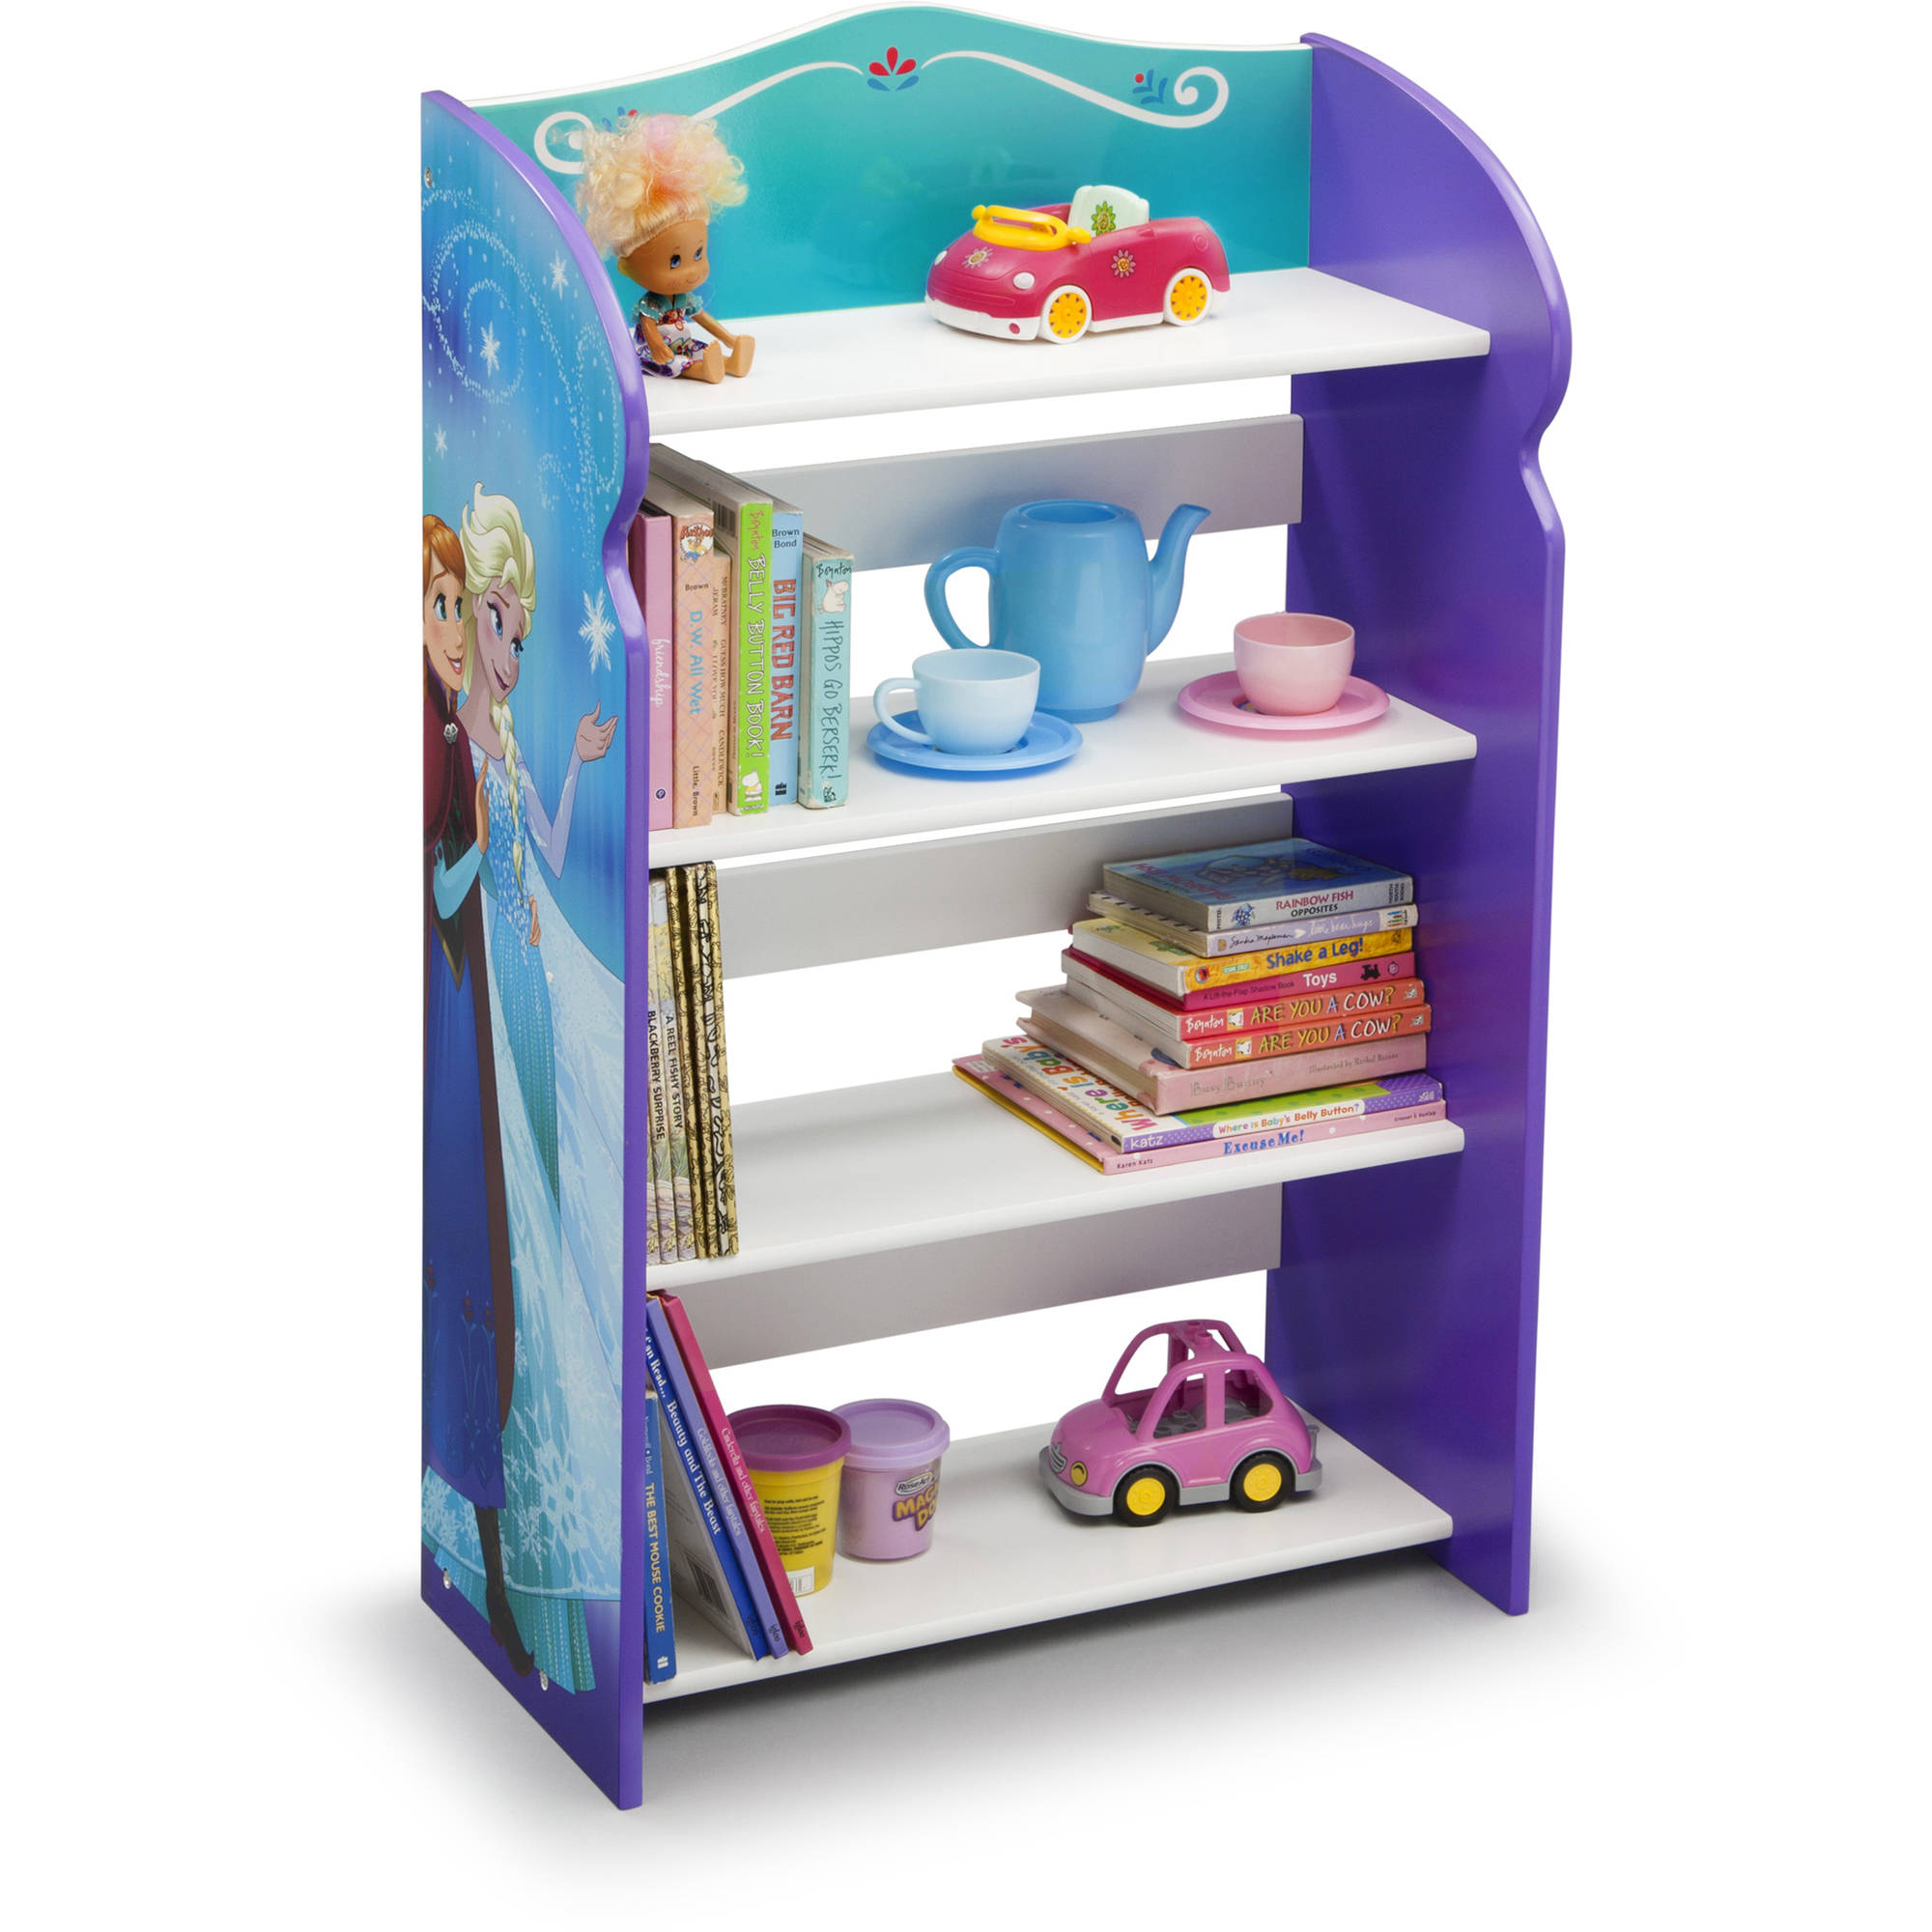 Disney Frozen Wood Bookshelf by Delta Children